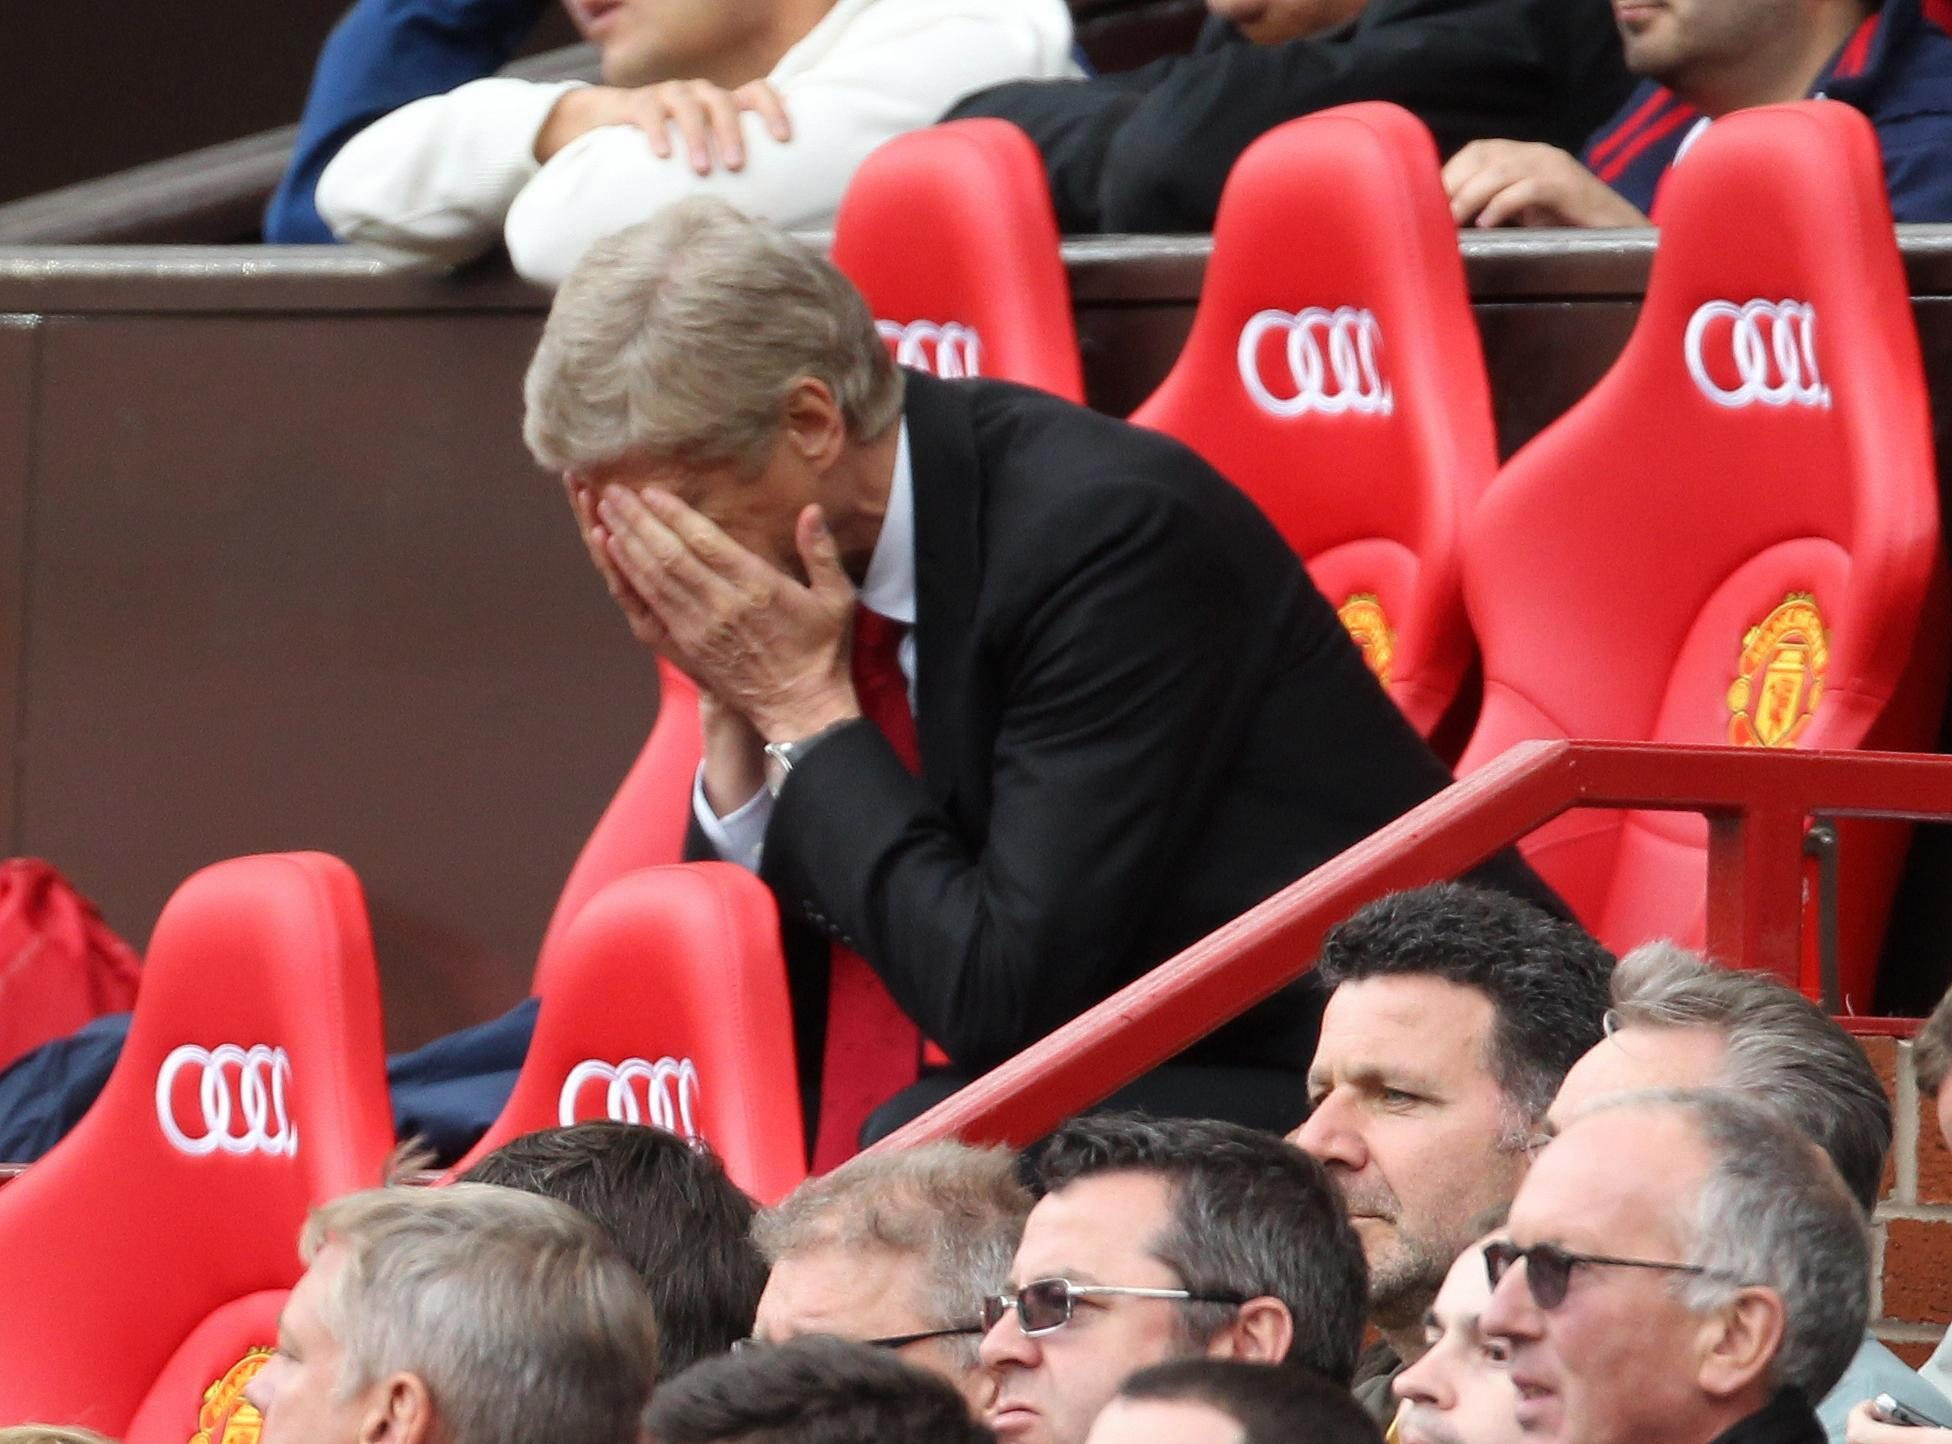 Wake up Arsene. It's all over